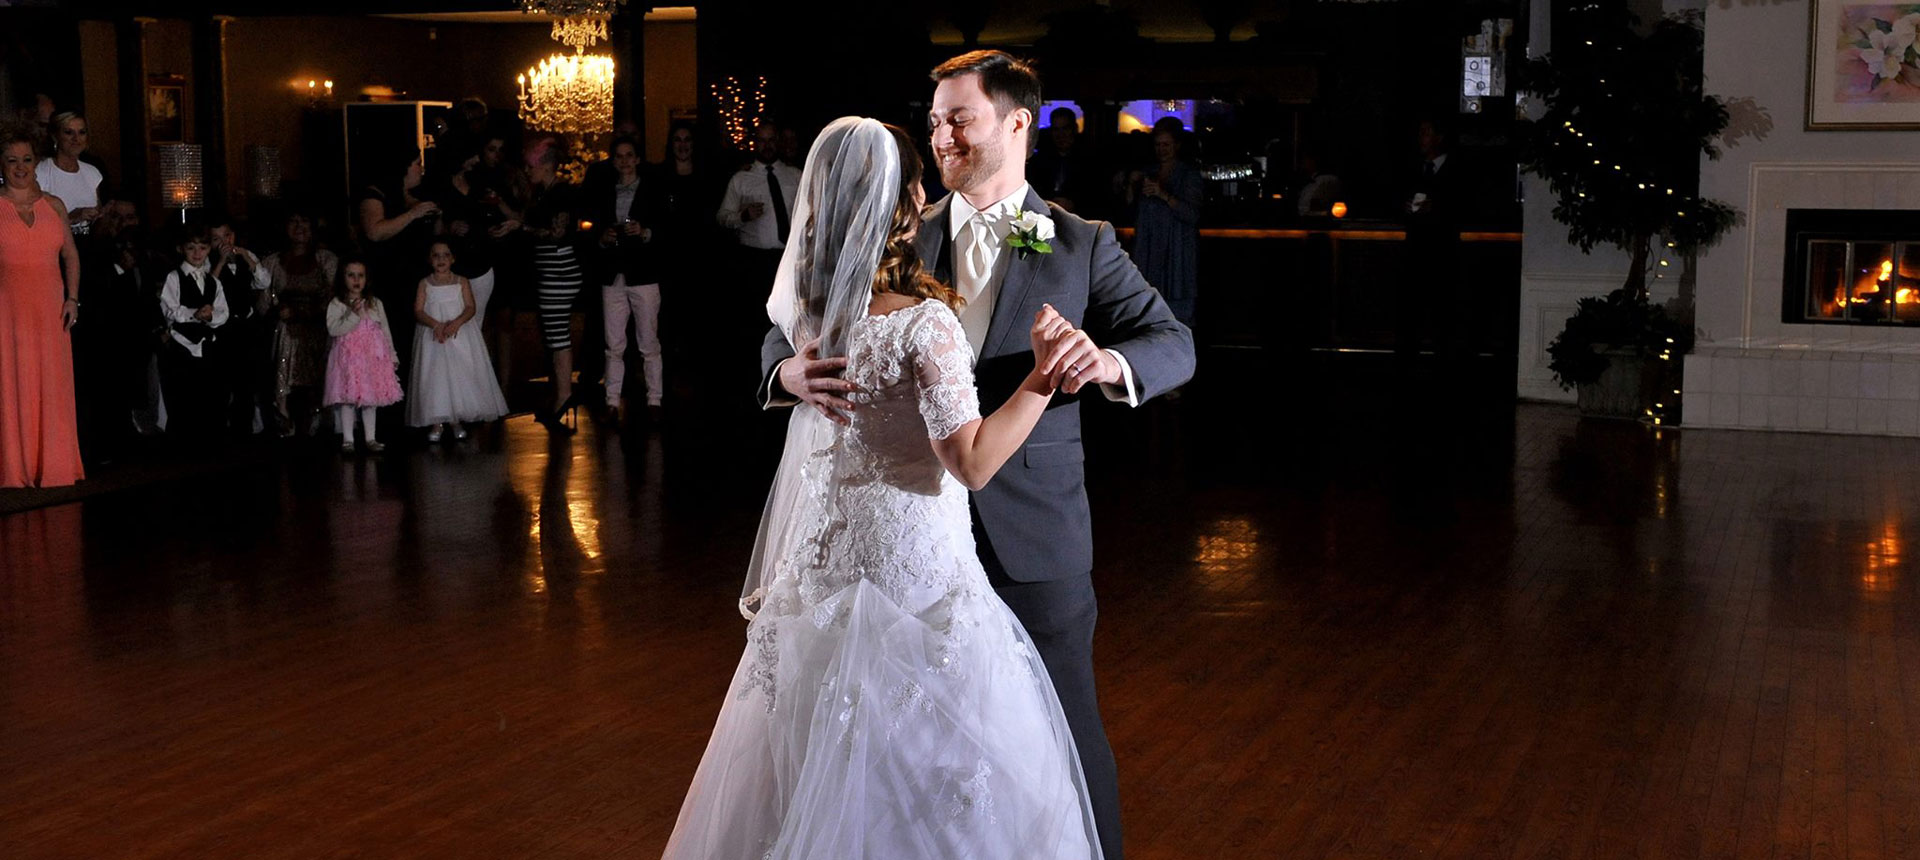 new-orleans-wedding-venue-dance